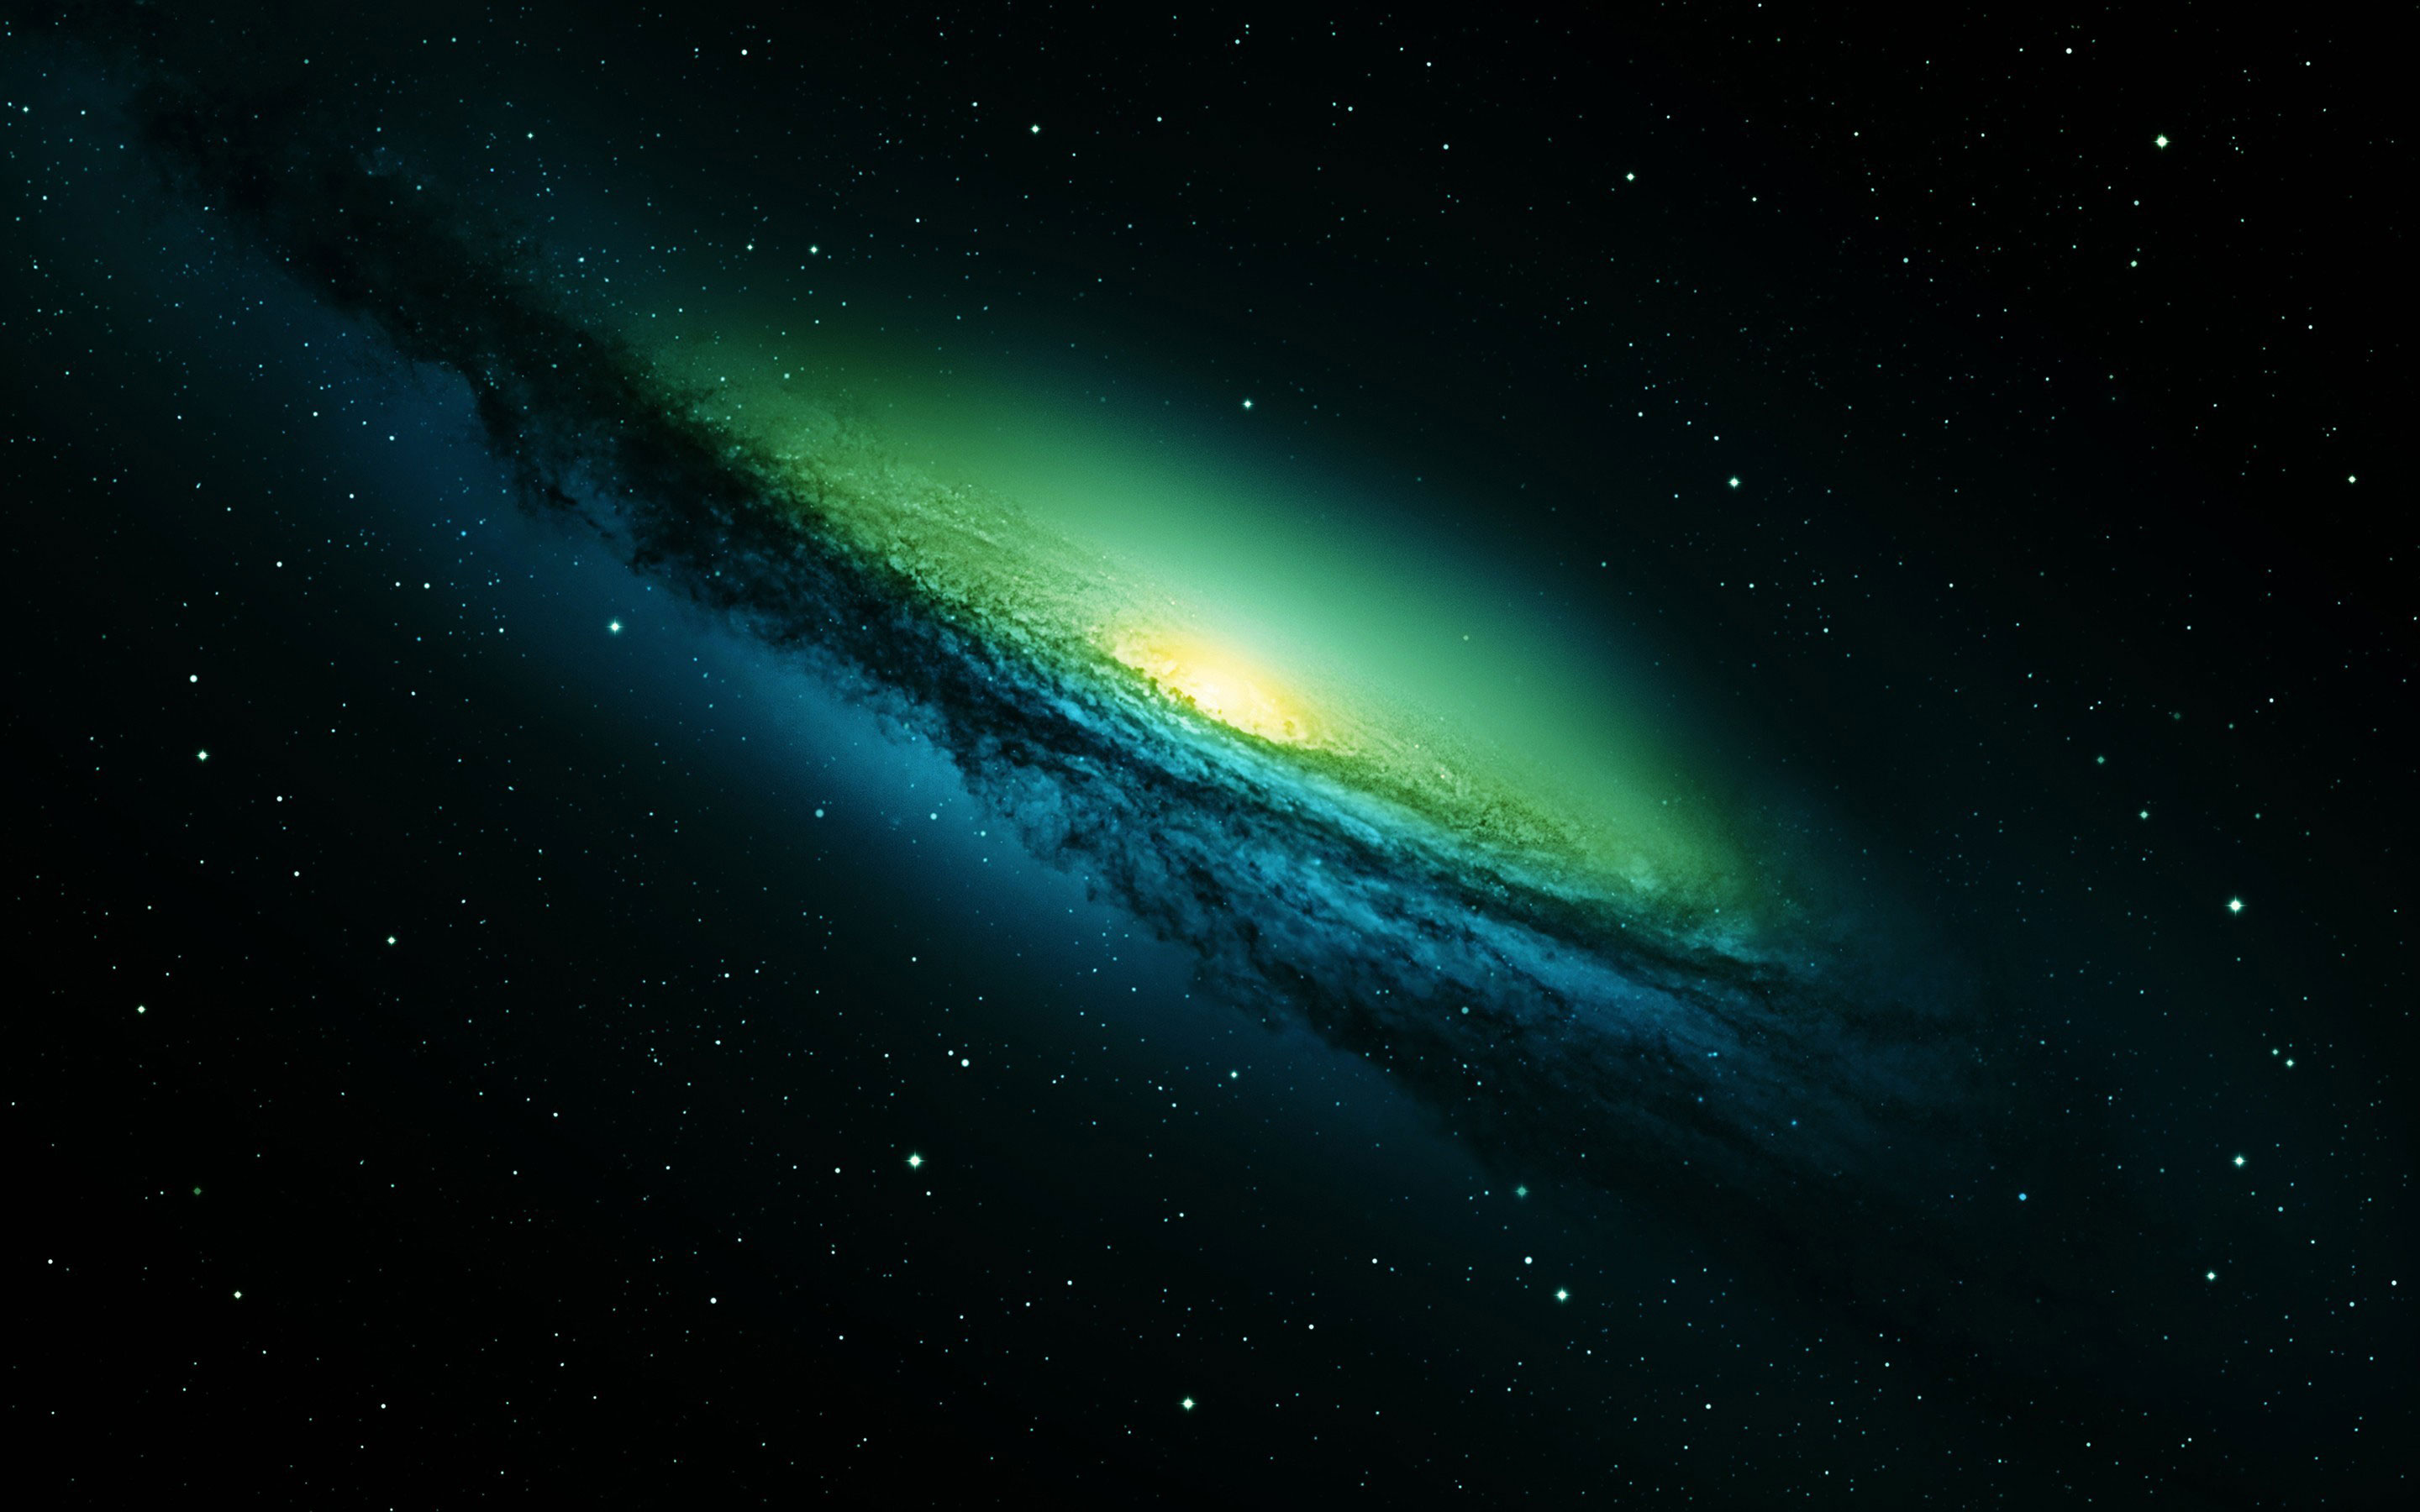 25 galaxy wallpapers backgrounds images pictures - Dark space hd ...